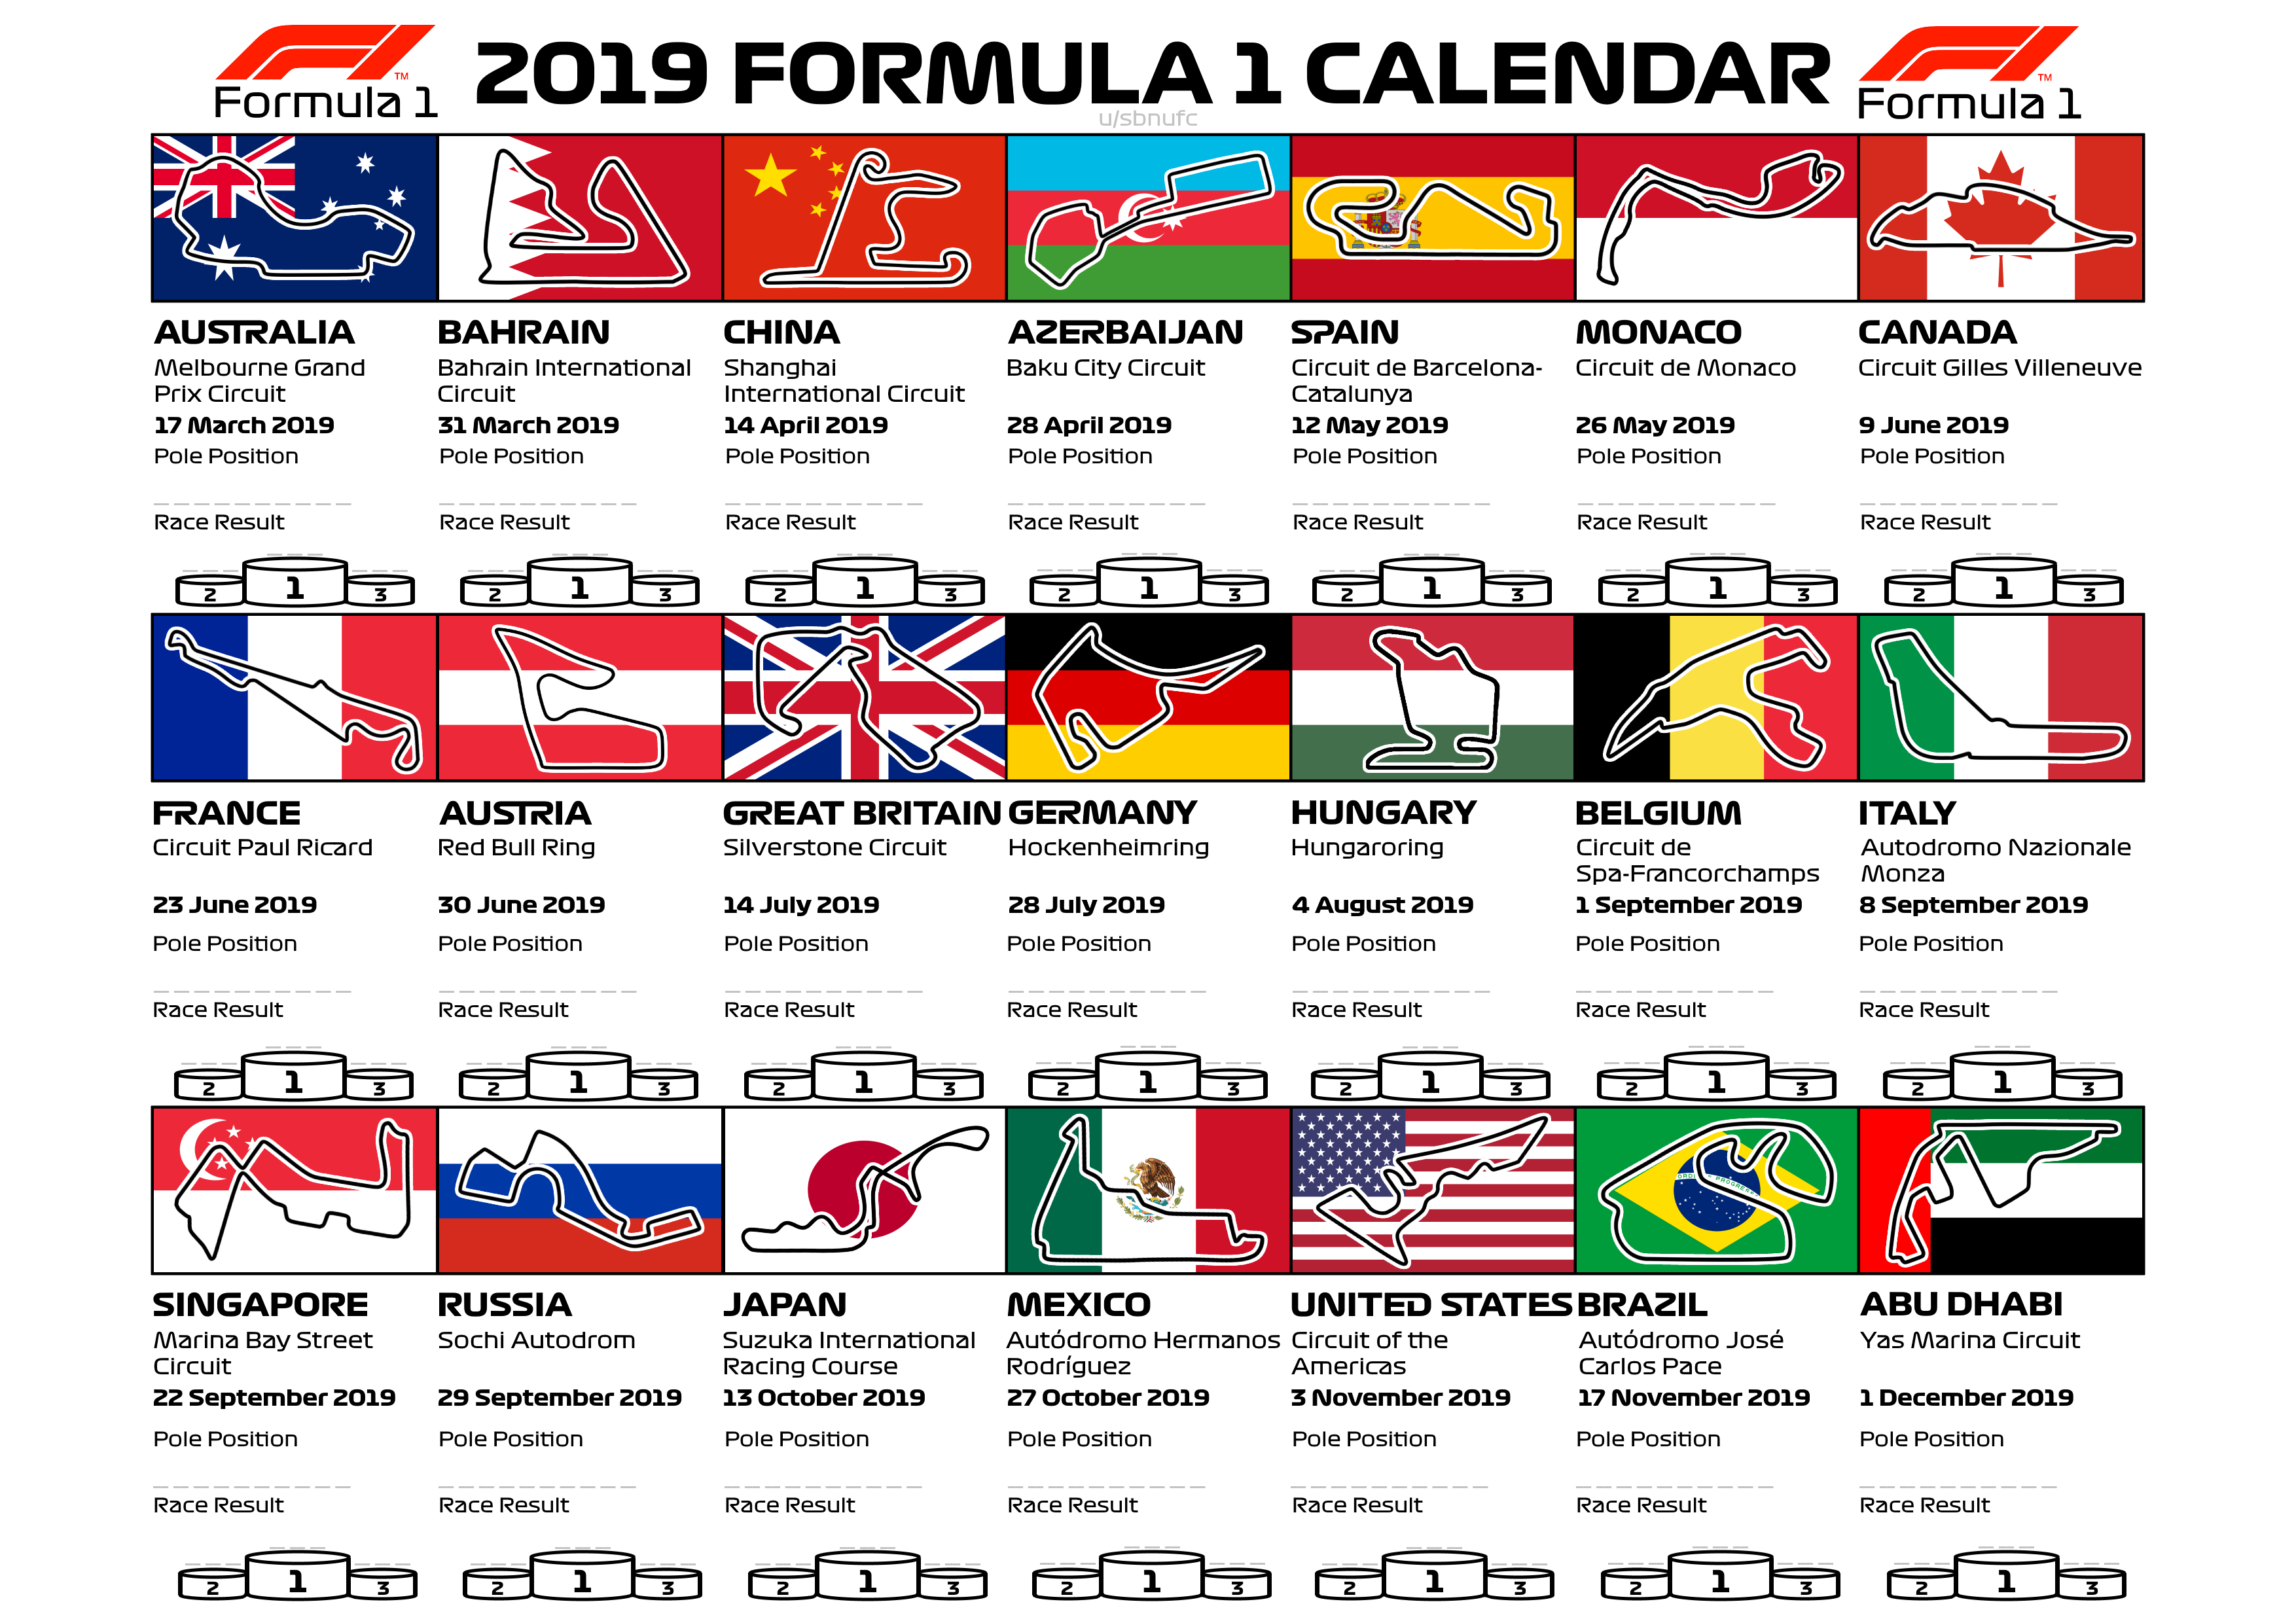 After Making A Calendar For The 2017 And 2018 Seasons, I Had Formula 2 Calendar 2019